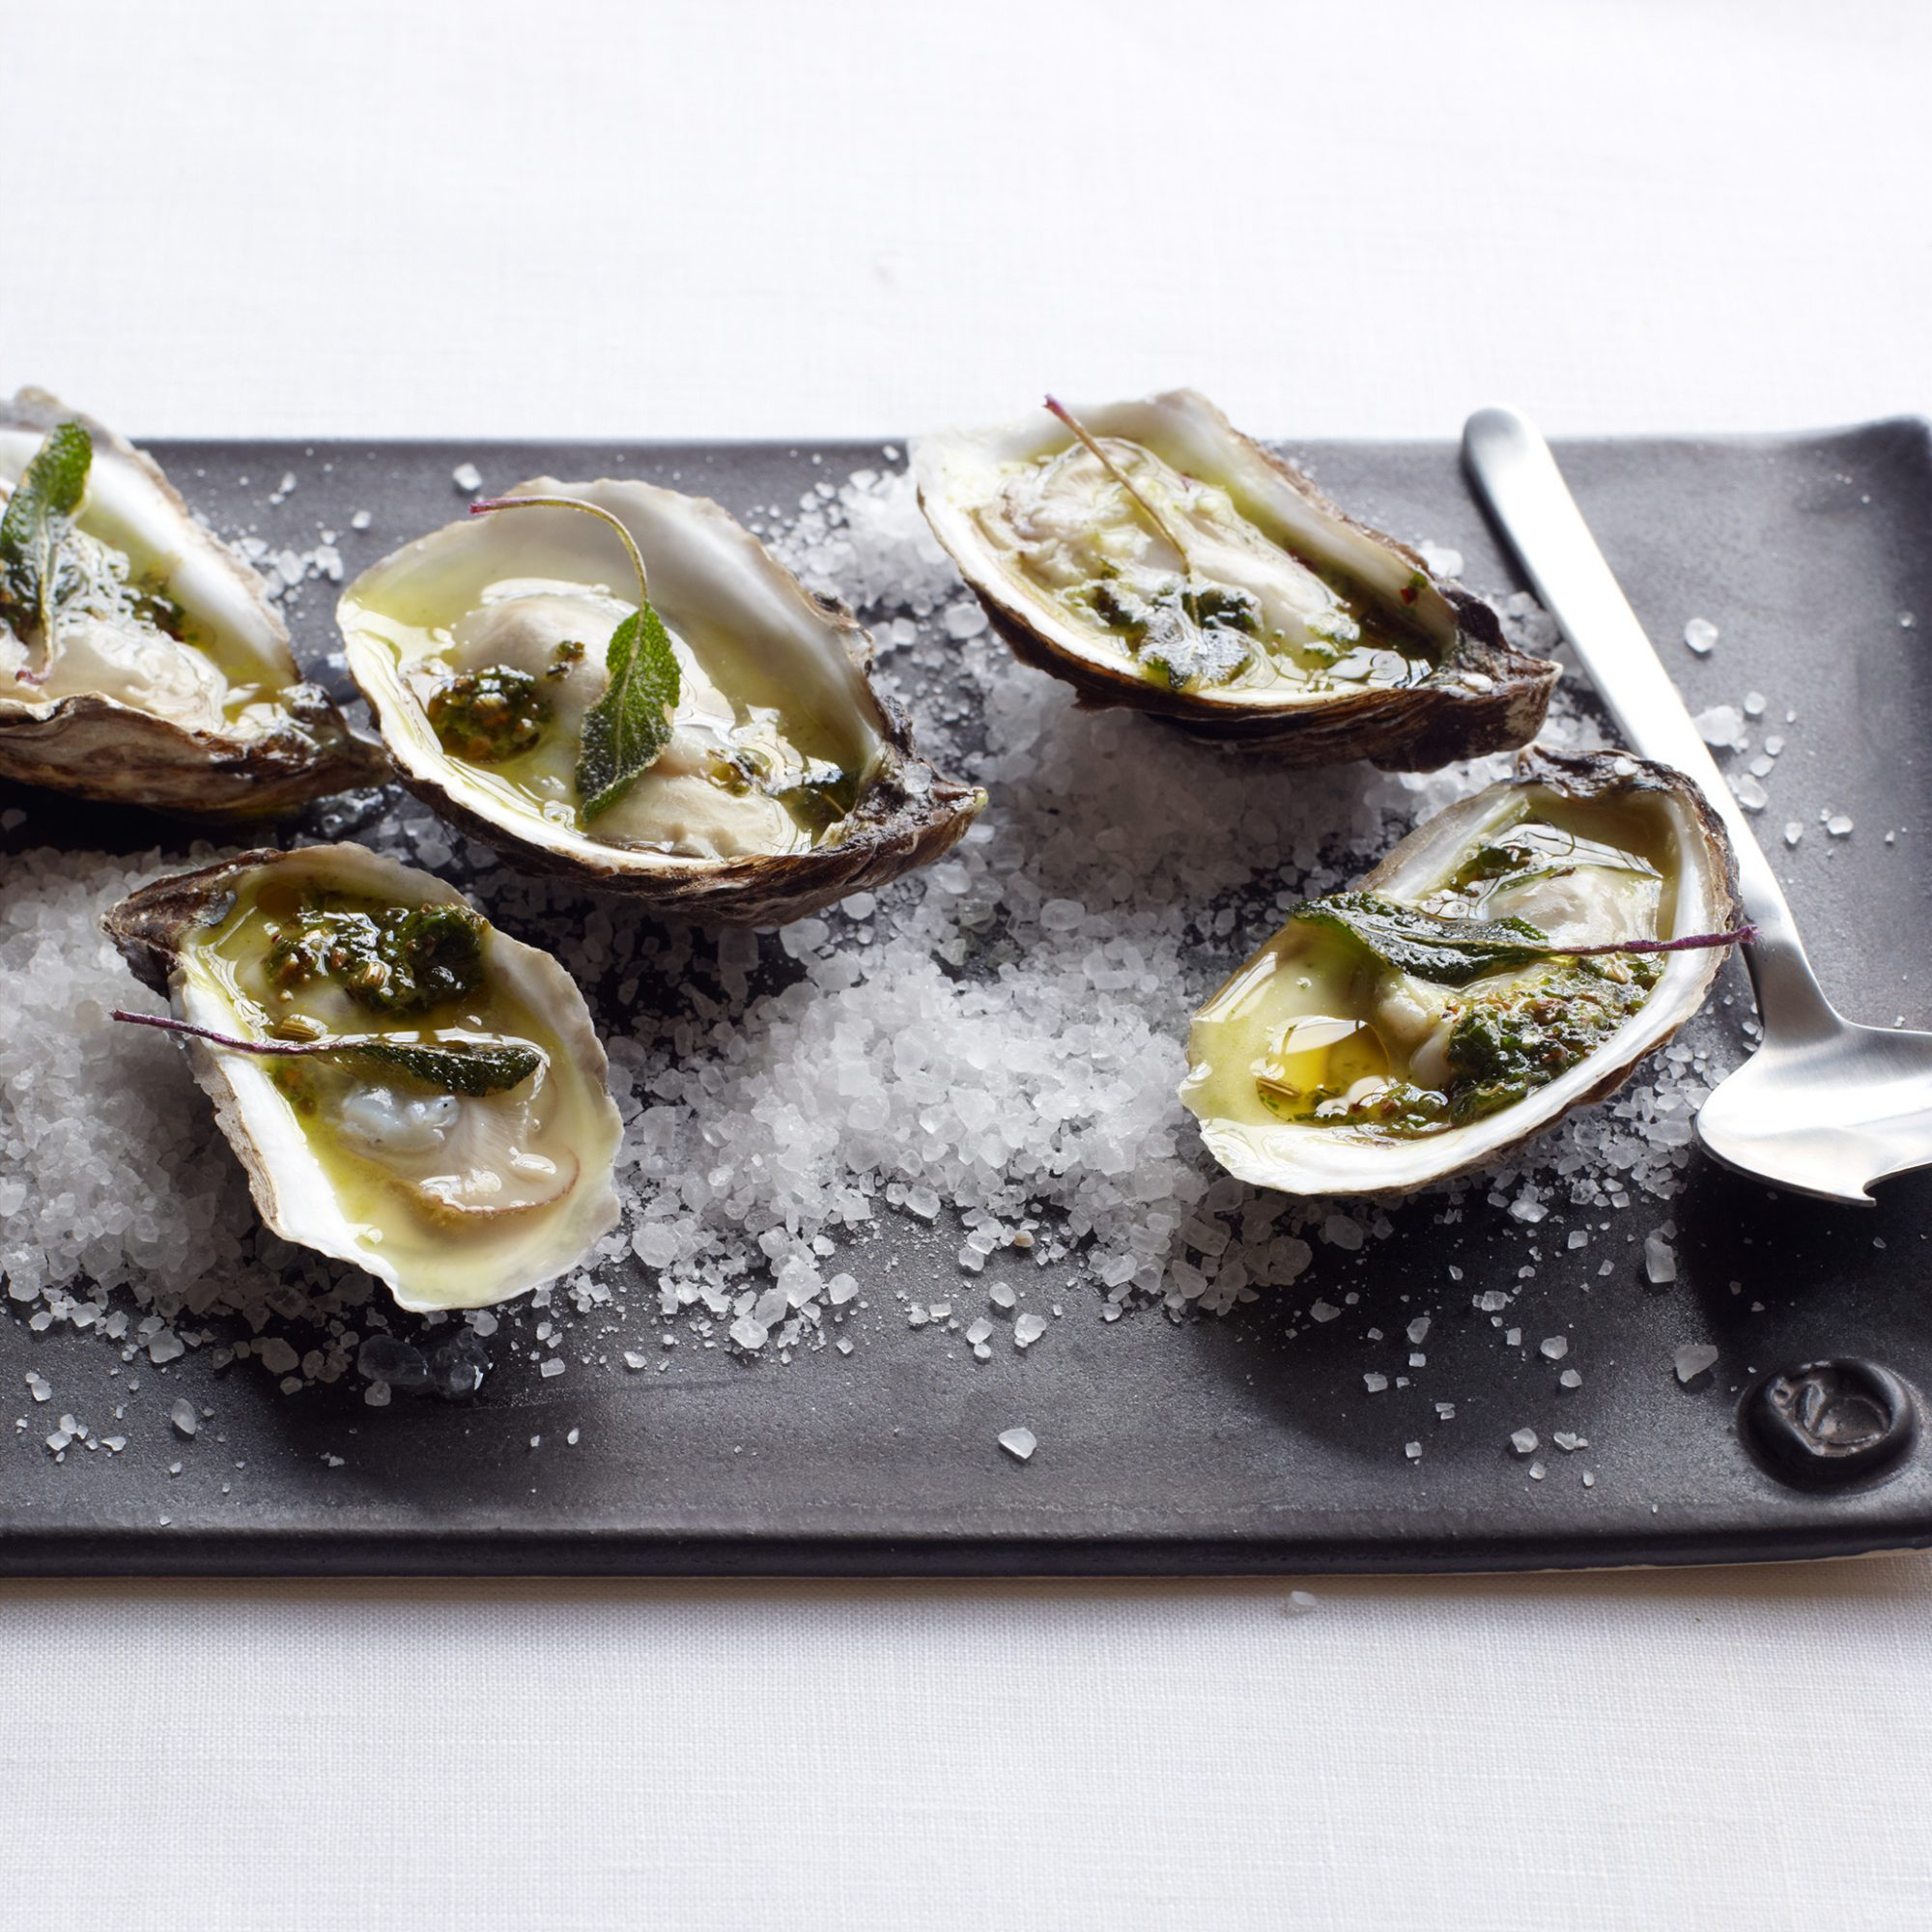 original-201207-r-grilled-oysters-with-spiced-tequila-butter.jpg